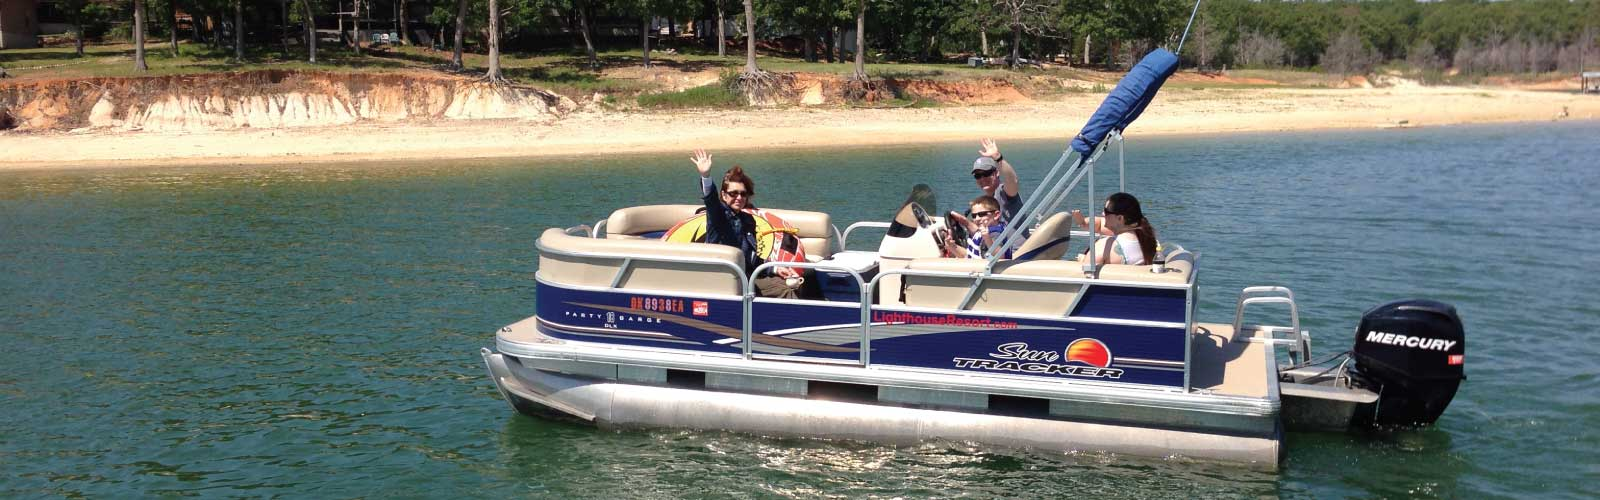 Boat Rental Policies